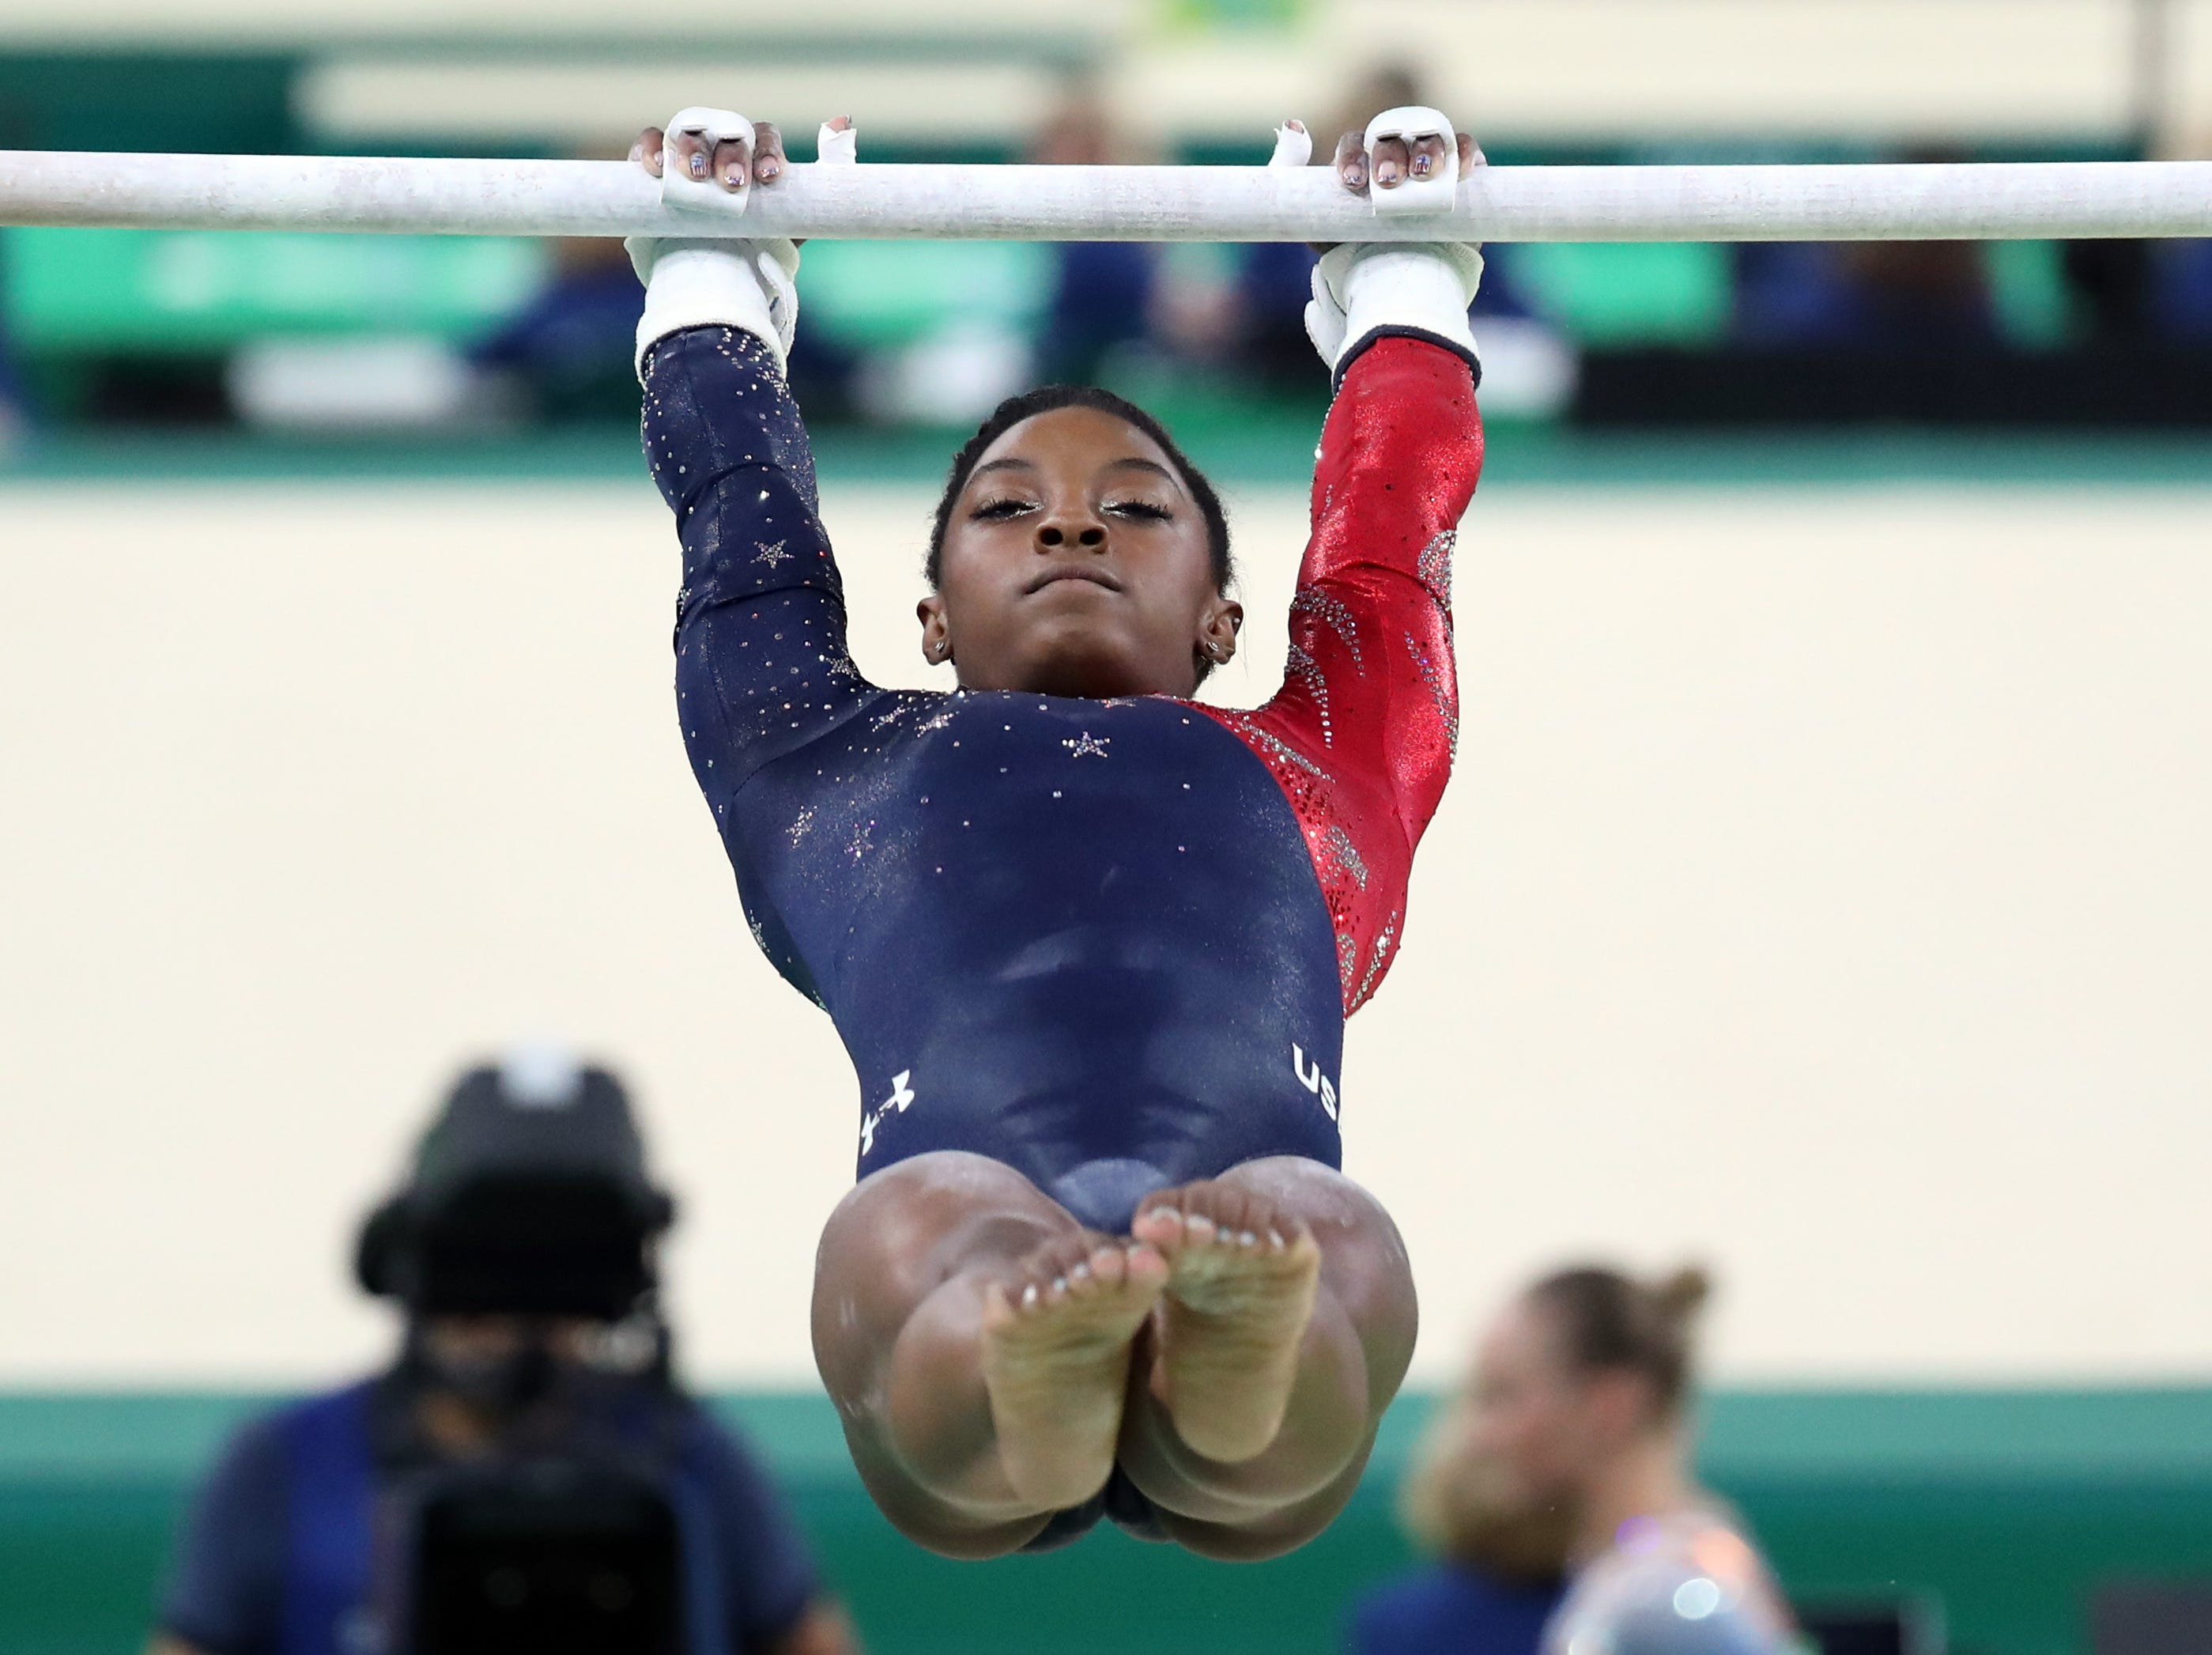 At the 2016 Olympics, Simone Biles competes on the uneven bars during  qualifying.